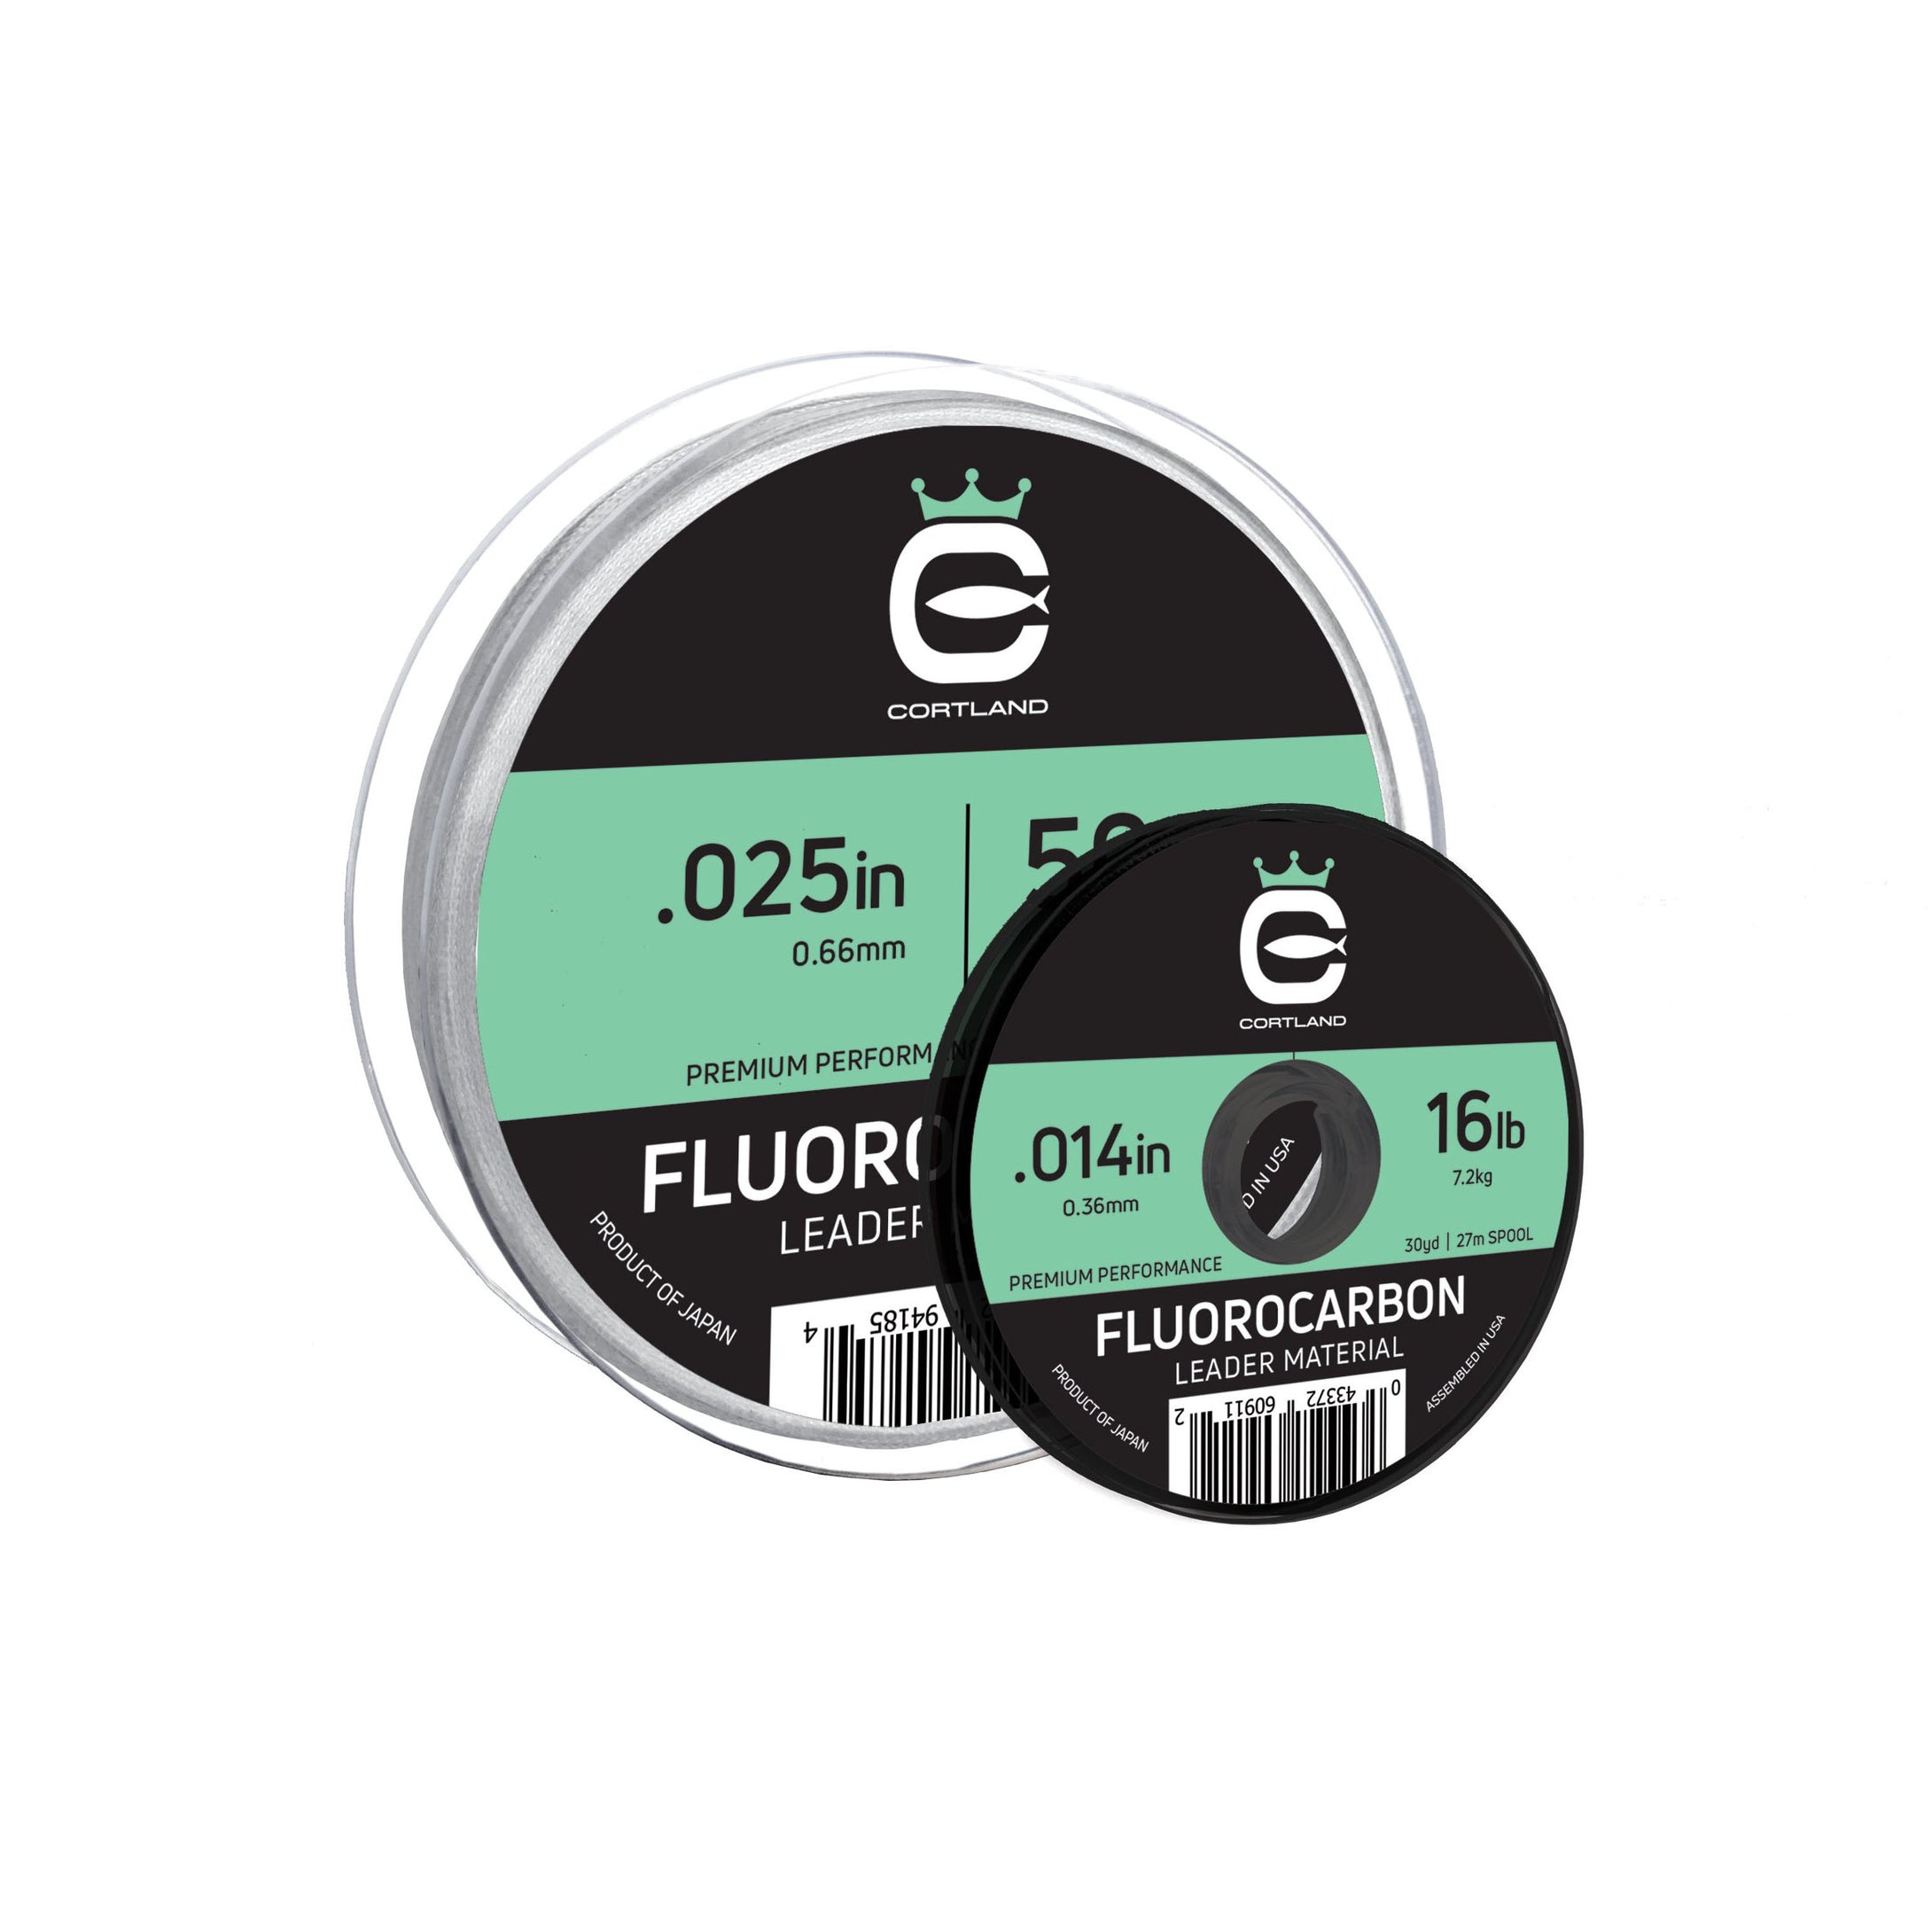 Cortland Fluorocarbon Leader Material / Tippet Line